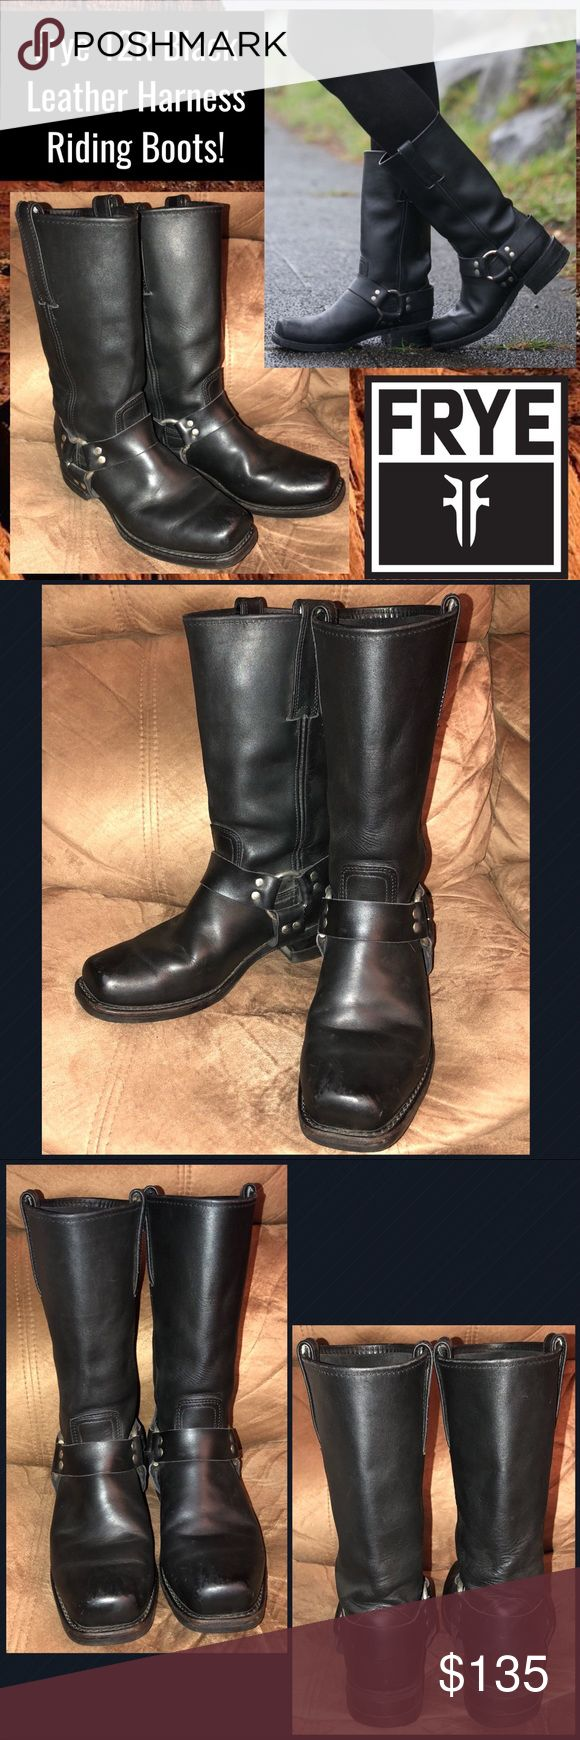 """Frye 12R Black Leather Harness Riding Boots! Frye 12R Black Leather Harness Riding Boots! FEATURES: 100% authentic, natural distressed black leather, 12R riding harness boot, Unlined, Rubber outsole, Made in USA, 11 1/2"""" shaft height, 14"""" shaft circumference, 1 1/2"""" heel height, 4"""" widest across bottom. RET:$328. Sz 8 1/2M. Boots get better with age. Some minor heel wear with minor ext marks. Nice light natural distressed look! VG condition! Offers welcome! Frye Shoes"""